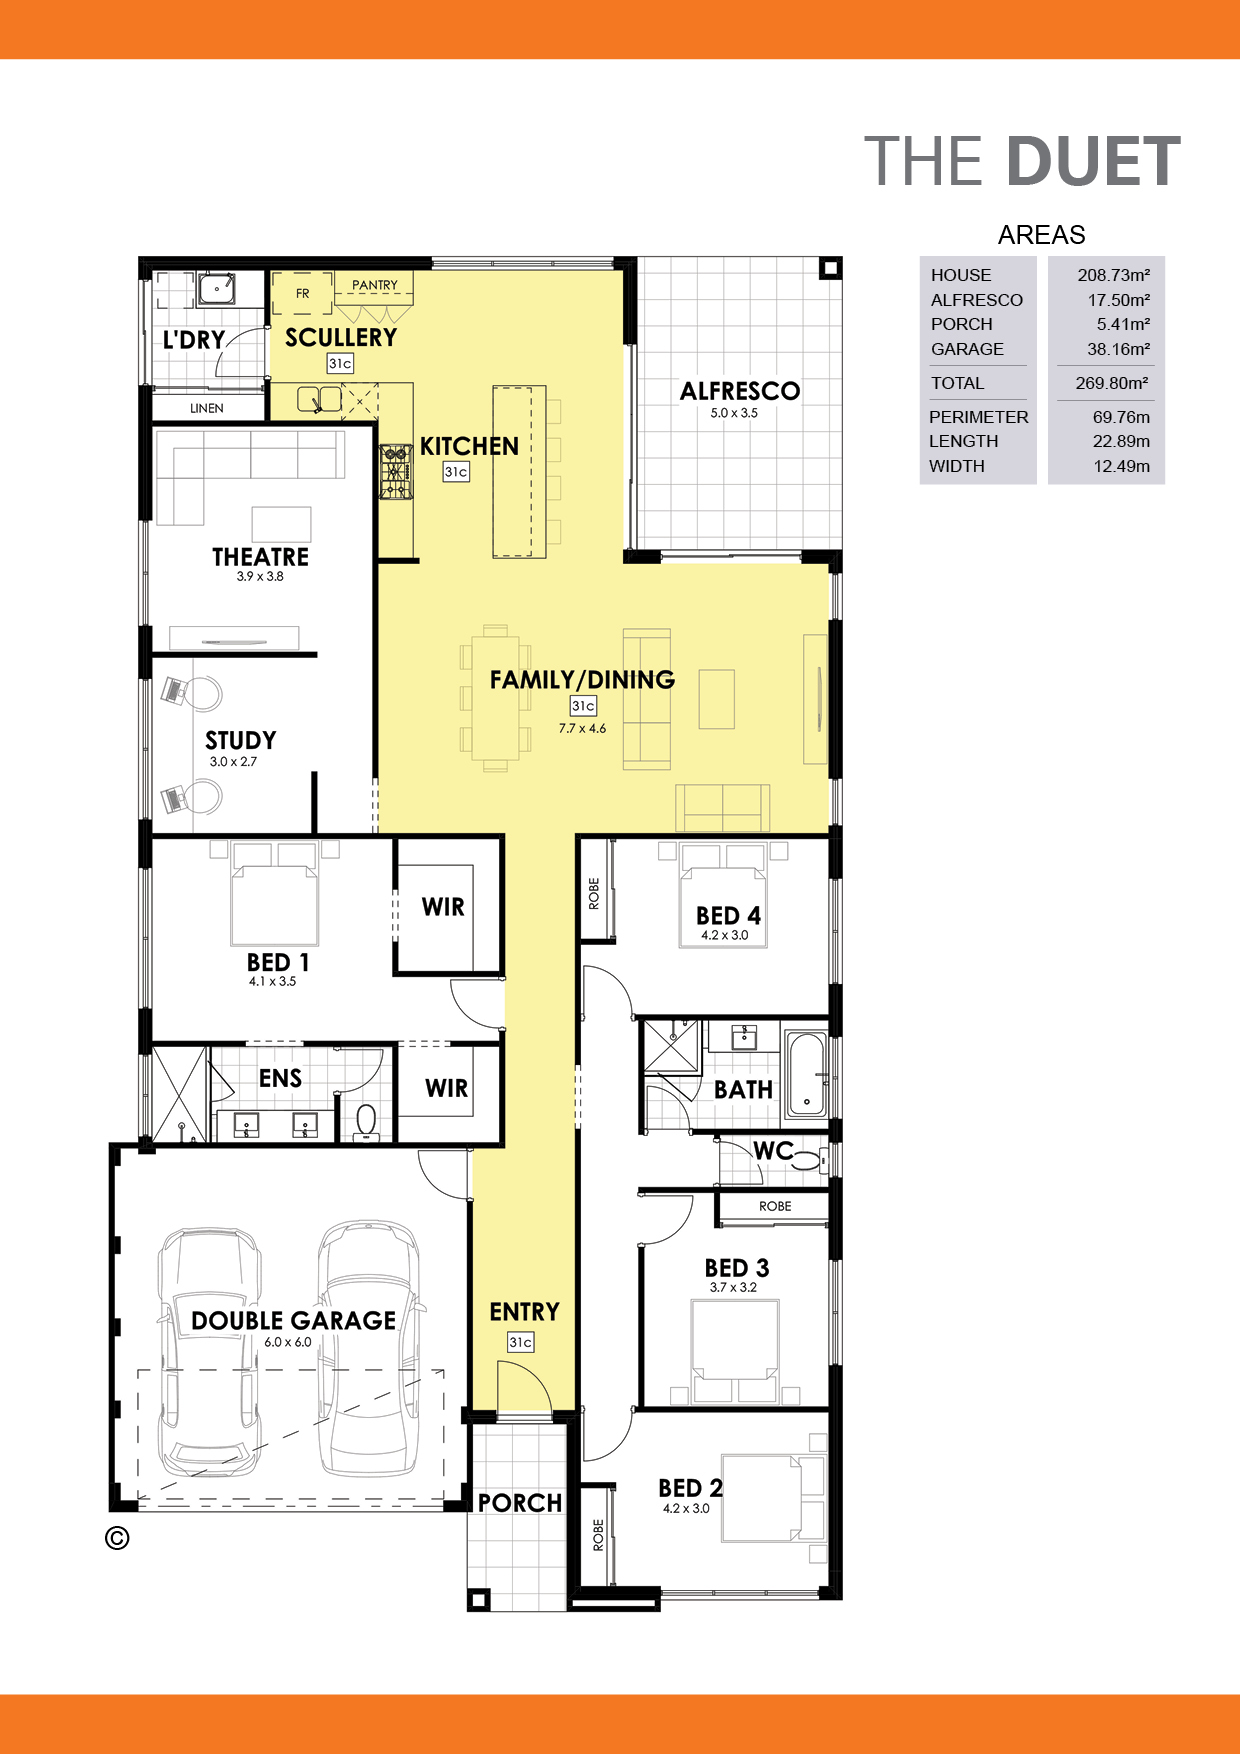 The Duet Floorplan